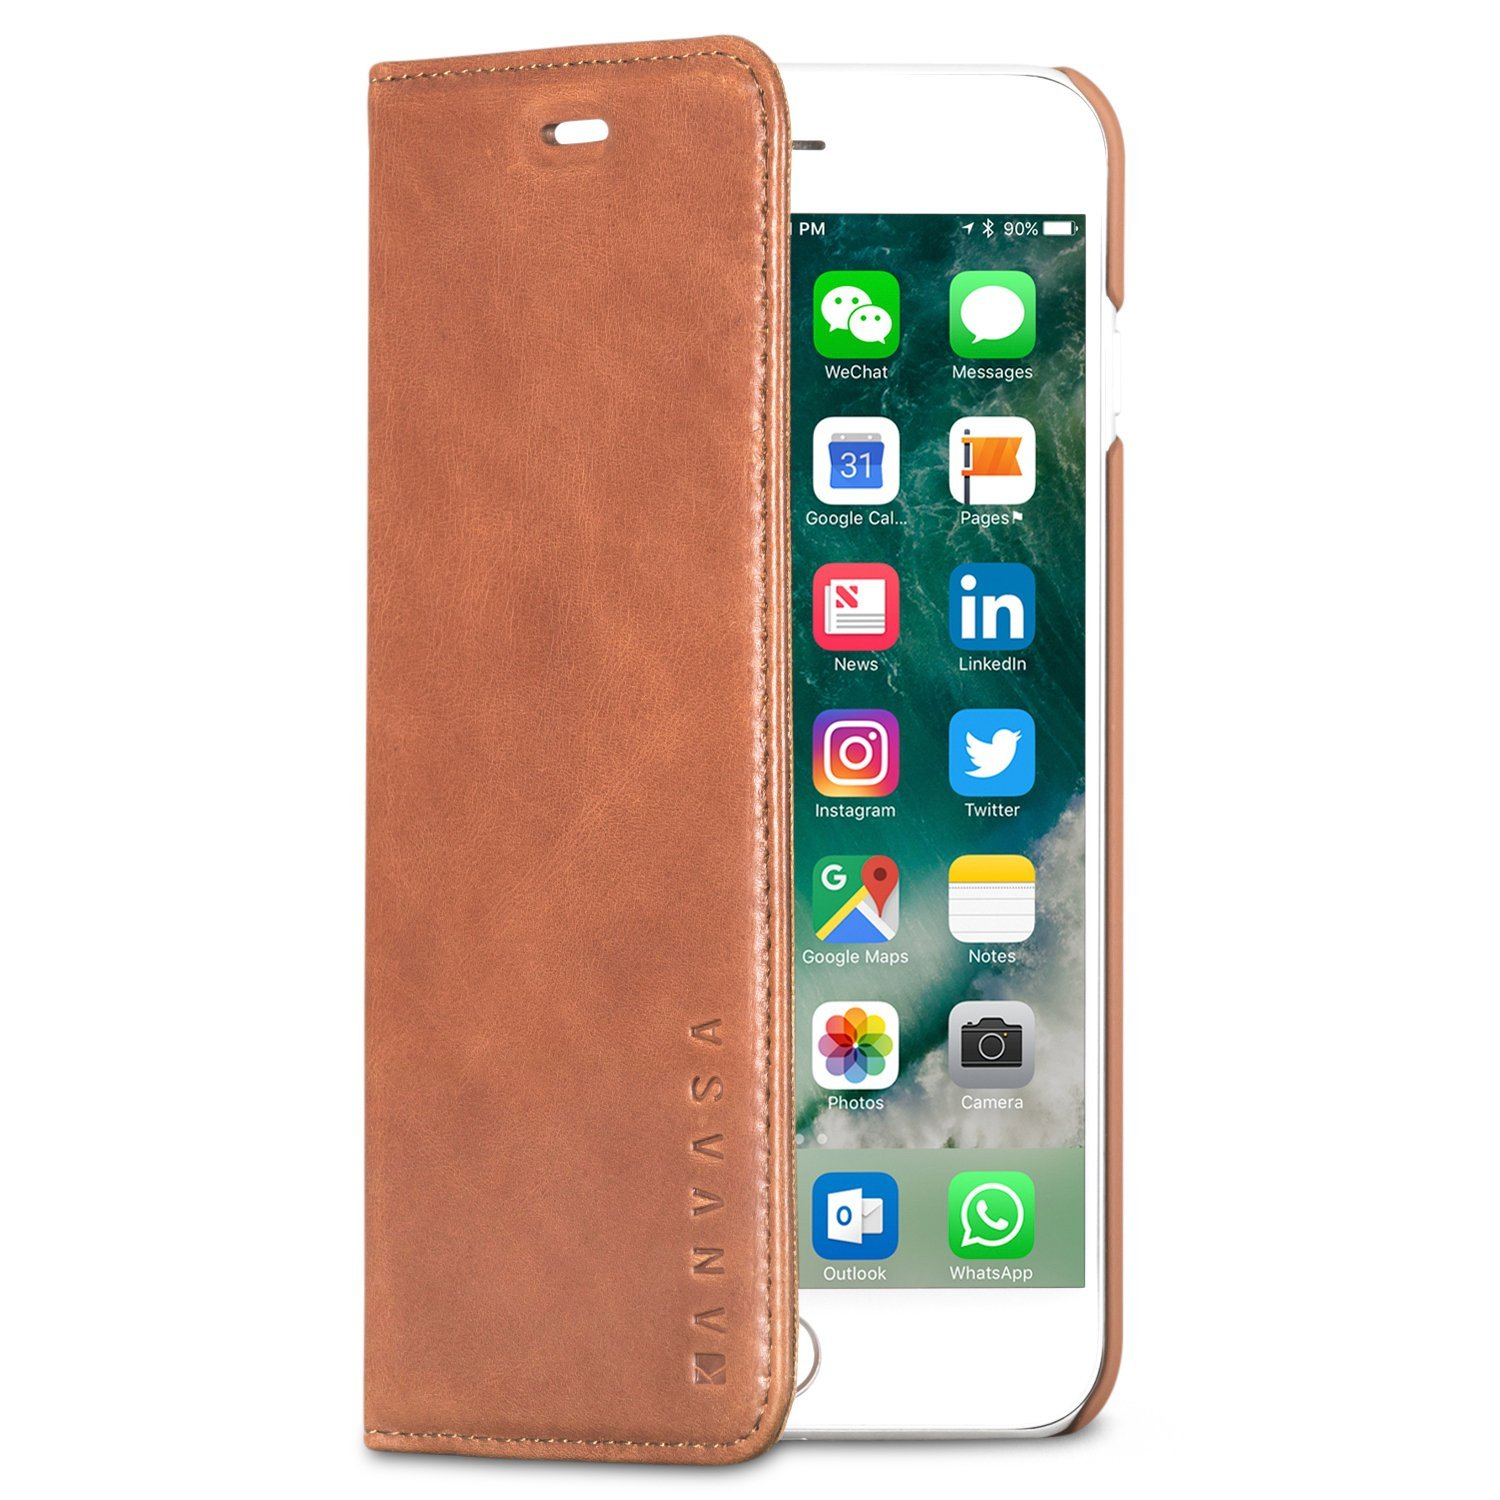 "KANVASA iPhone 7 Plus Leather Case Flip Cover ""Pro"" Brown - Premium Genuine Leather Wallet Book Folio Case for the Original iPhone 7 Plus (5.5 inch) - Ultra Thin with Magnetic Closure"